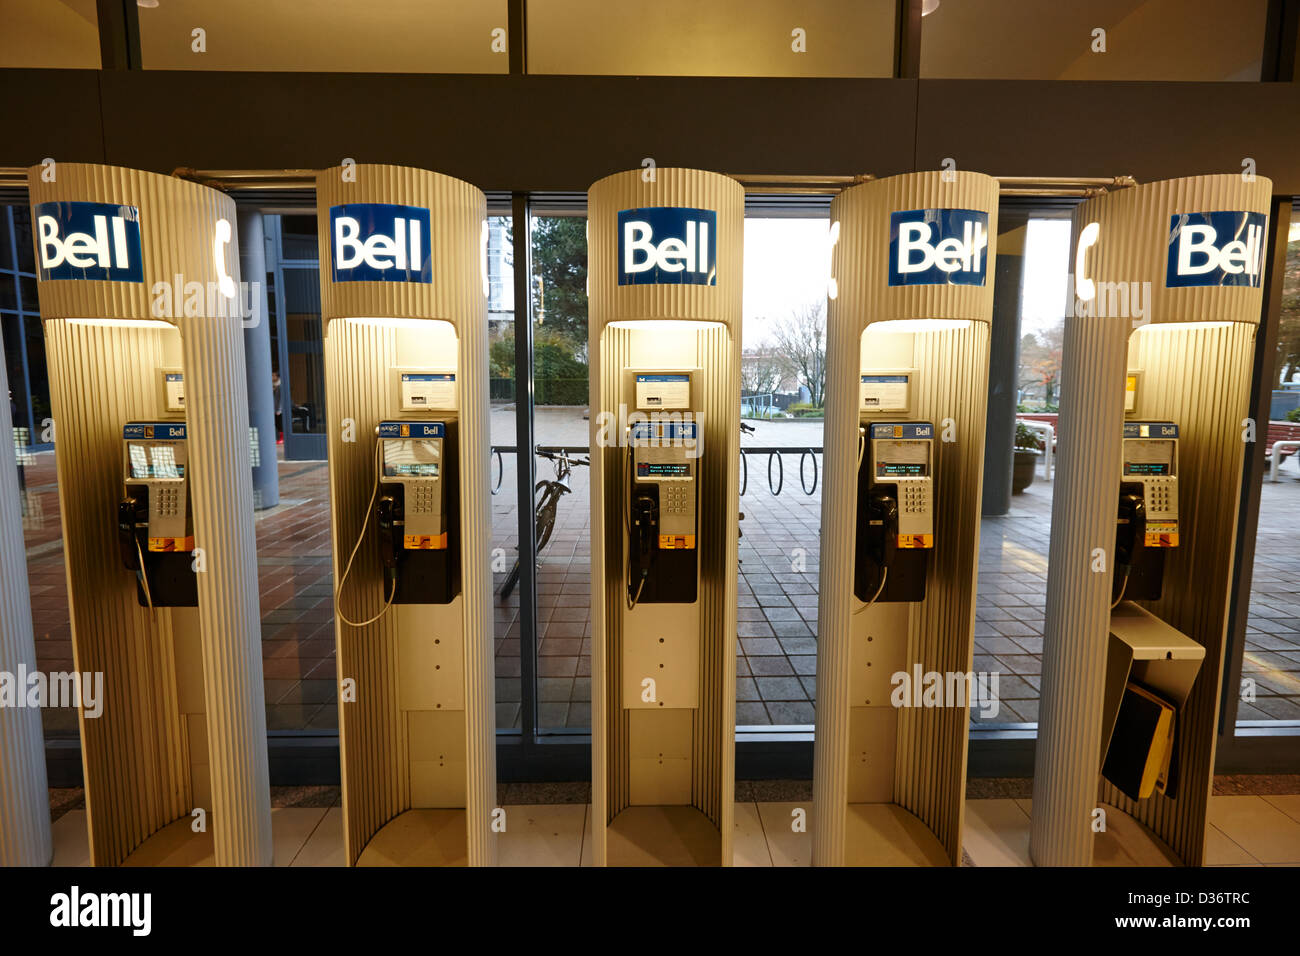 row of bell public telephones Vancouver BC Canada - Stock Image